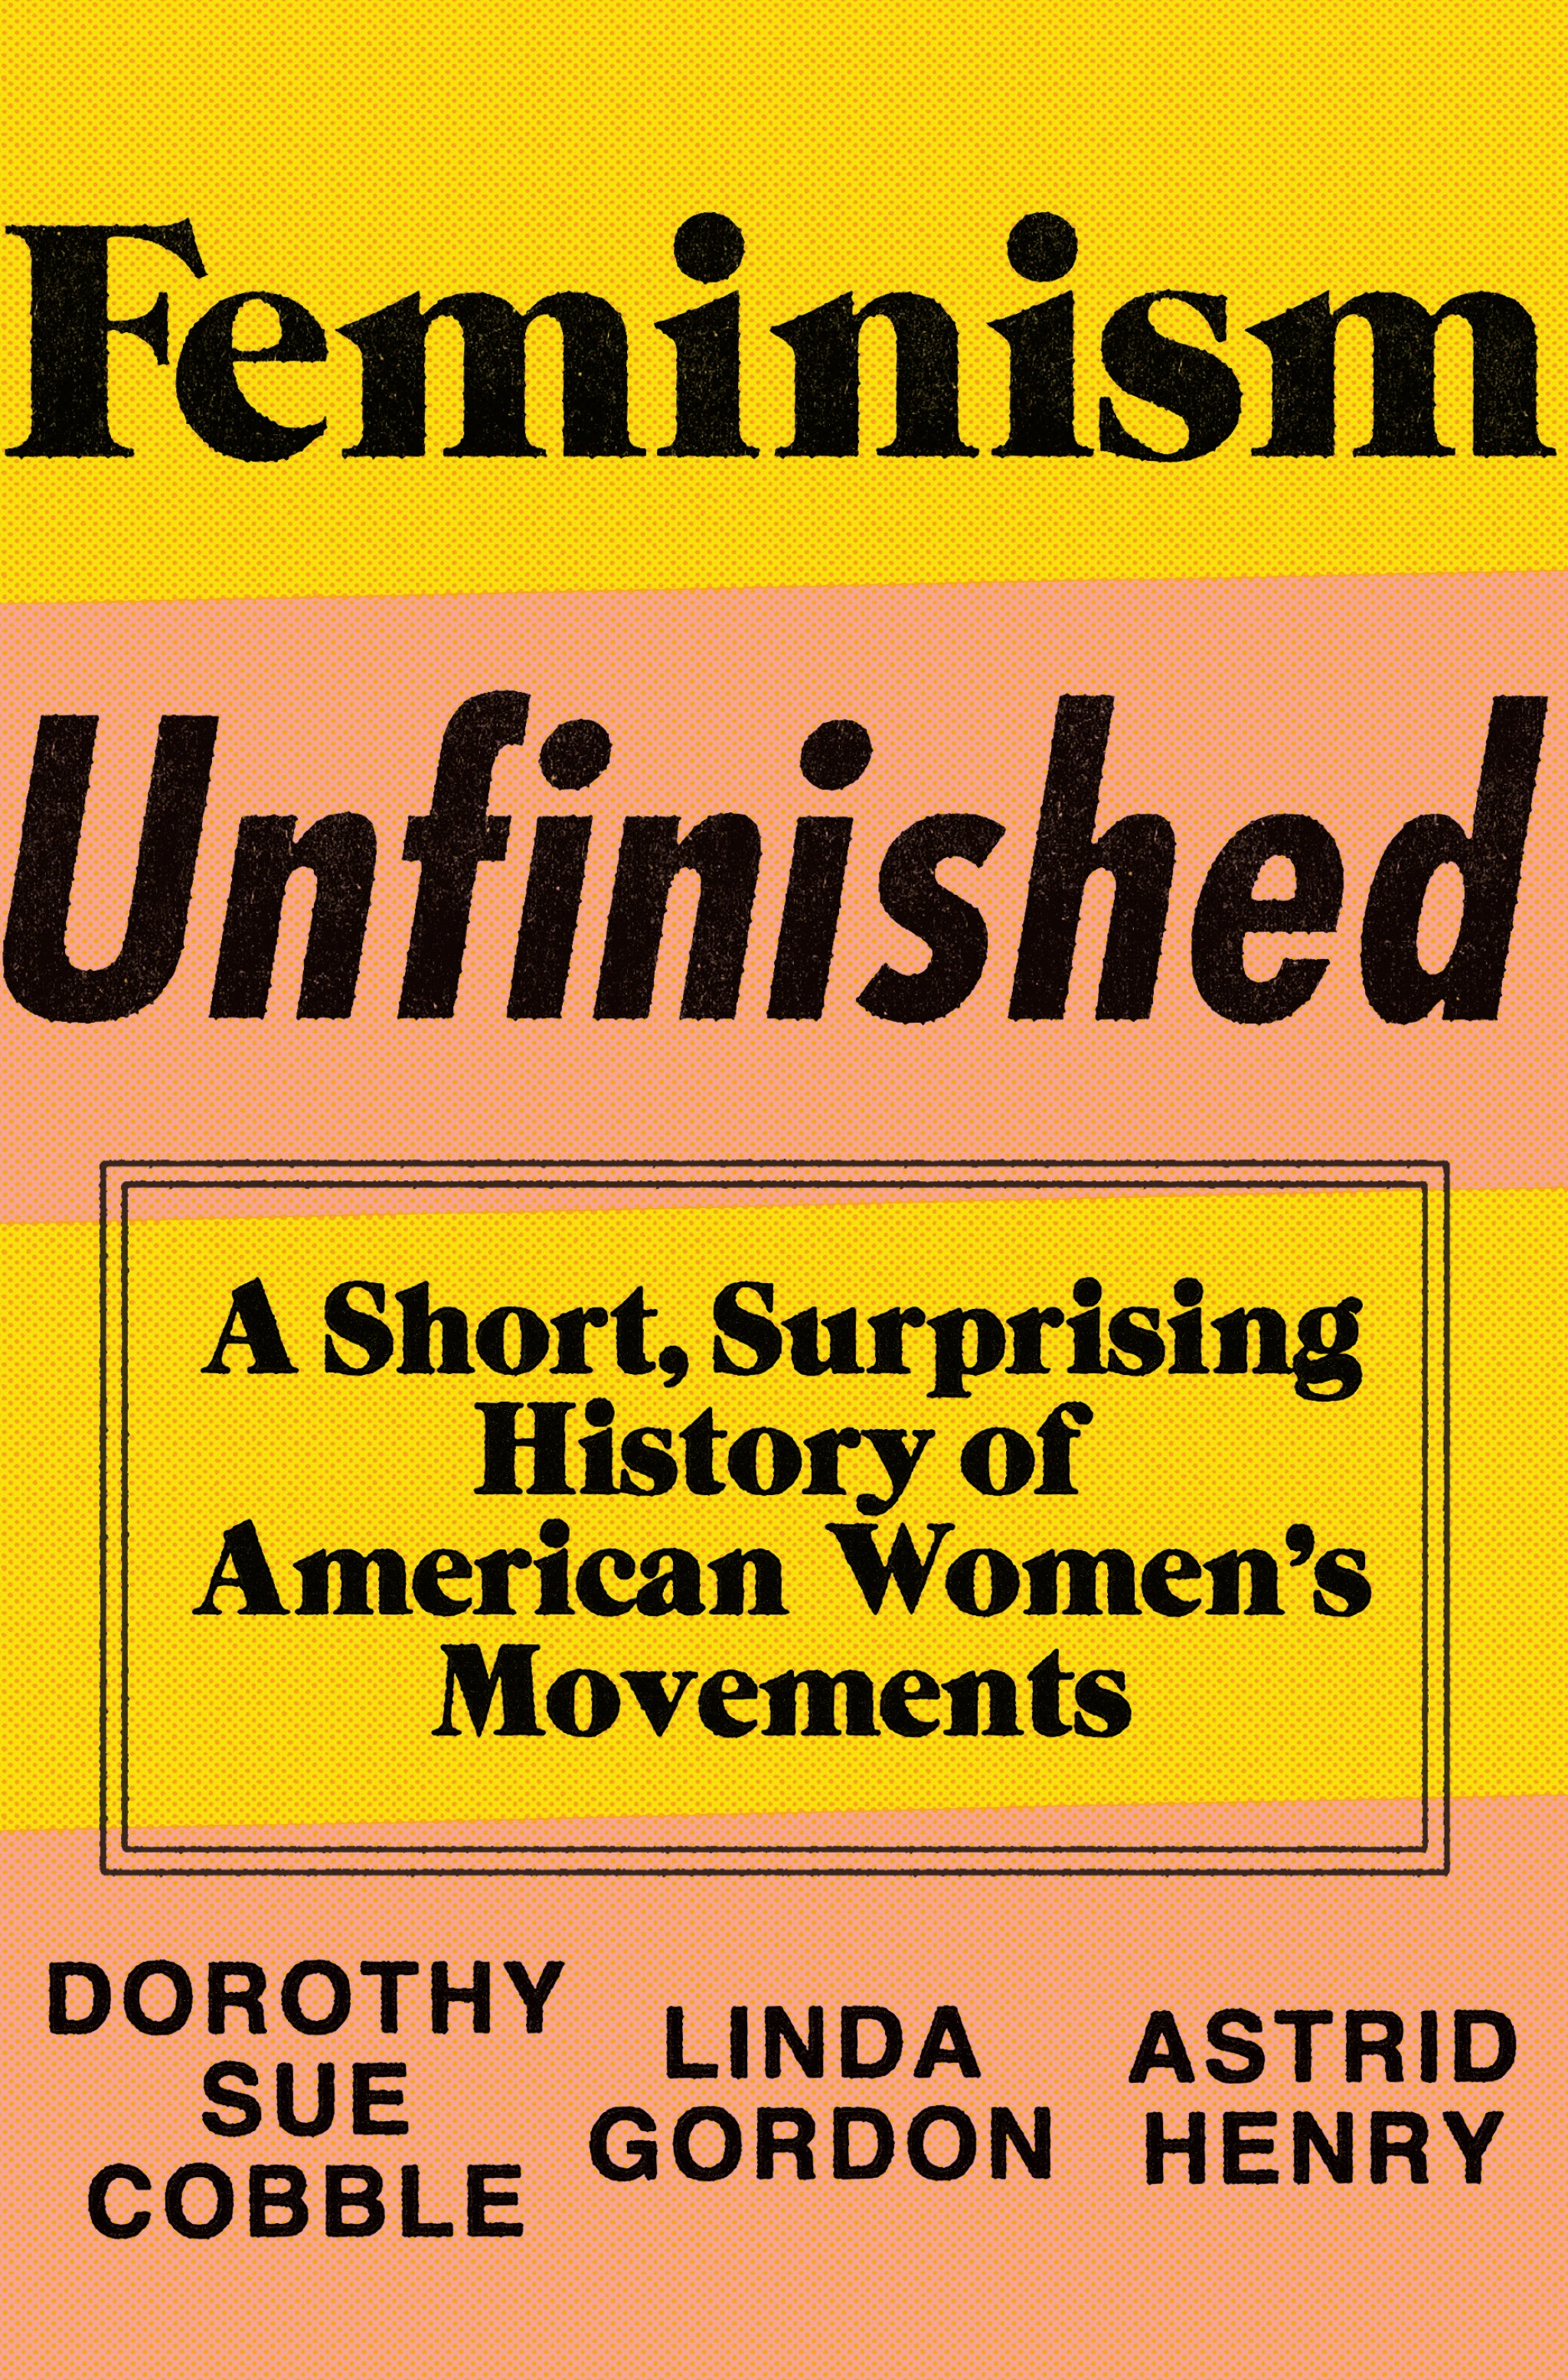 an introduction to the history of the american feminist movement in the 1960s A body of feminist literature followed the feminine mystique, including kate millett's sexual politics, germaine greer's the female eunuch, bell hooks's ain't i a woman, novels by angela carter.